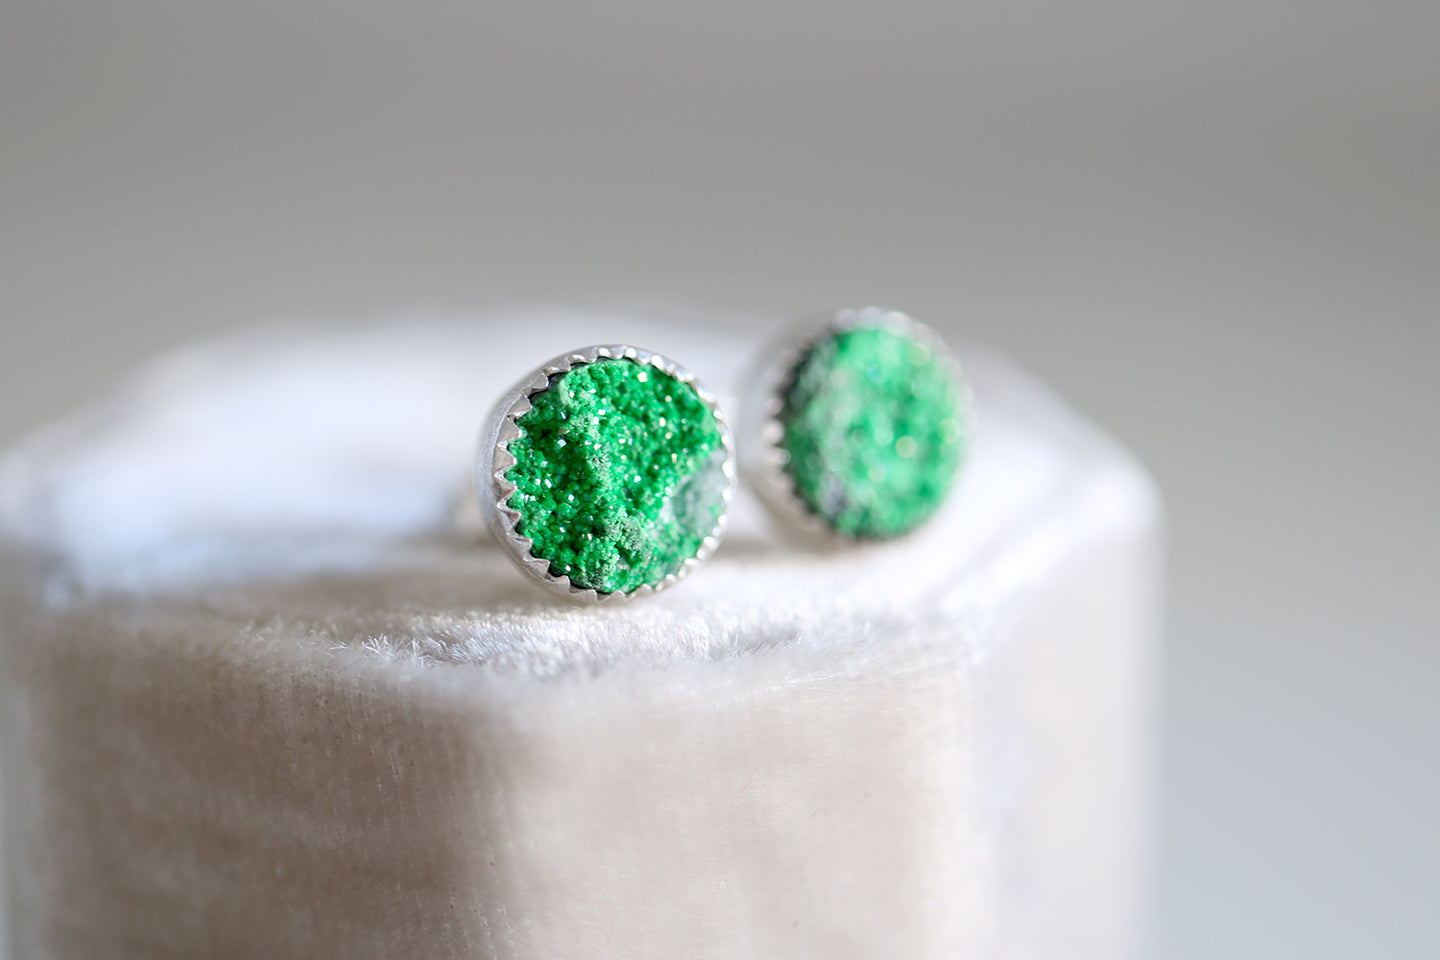 Uvarovite earrings. Sterling silver earrings with 9mm Uvarovite Garnet.